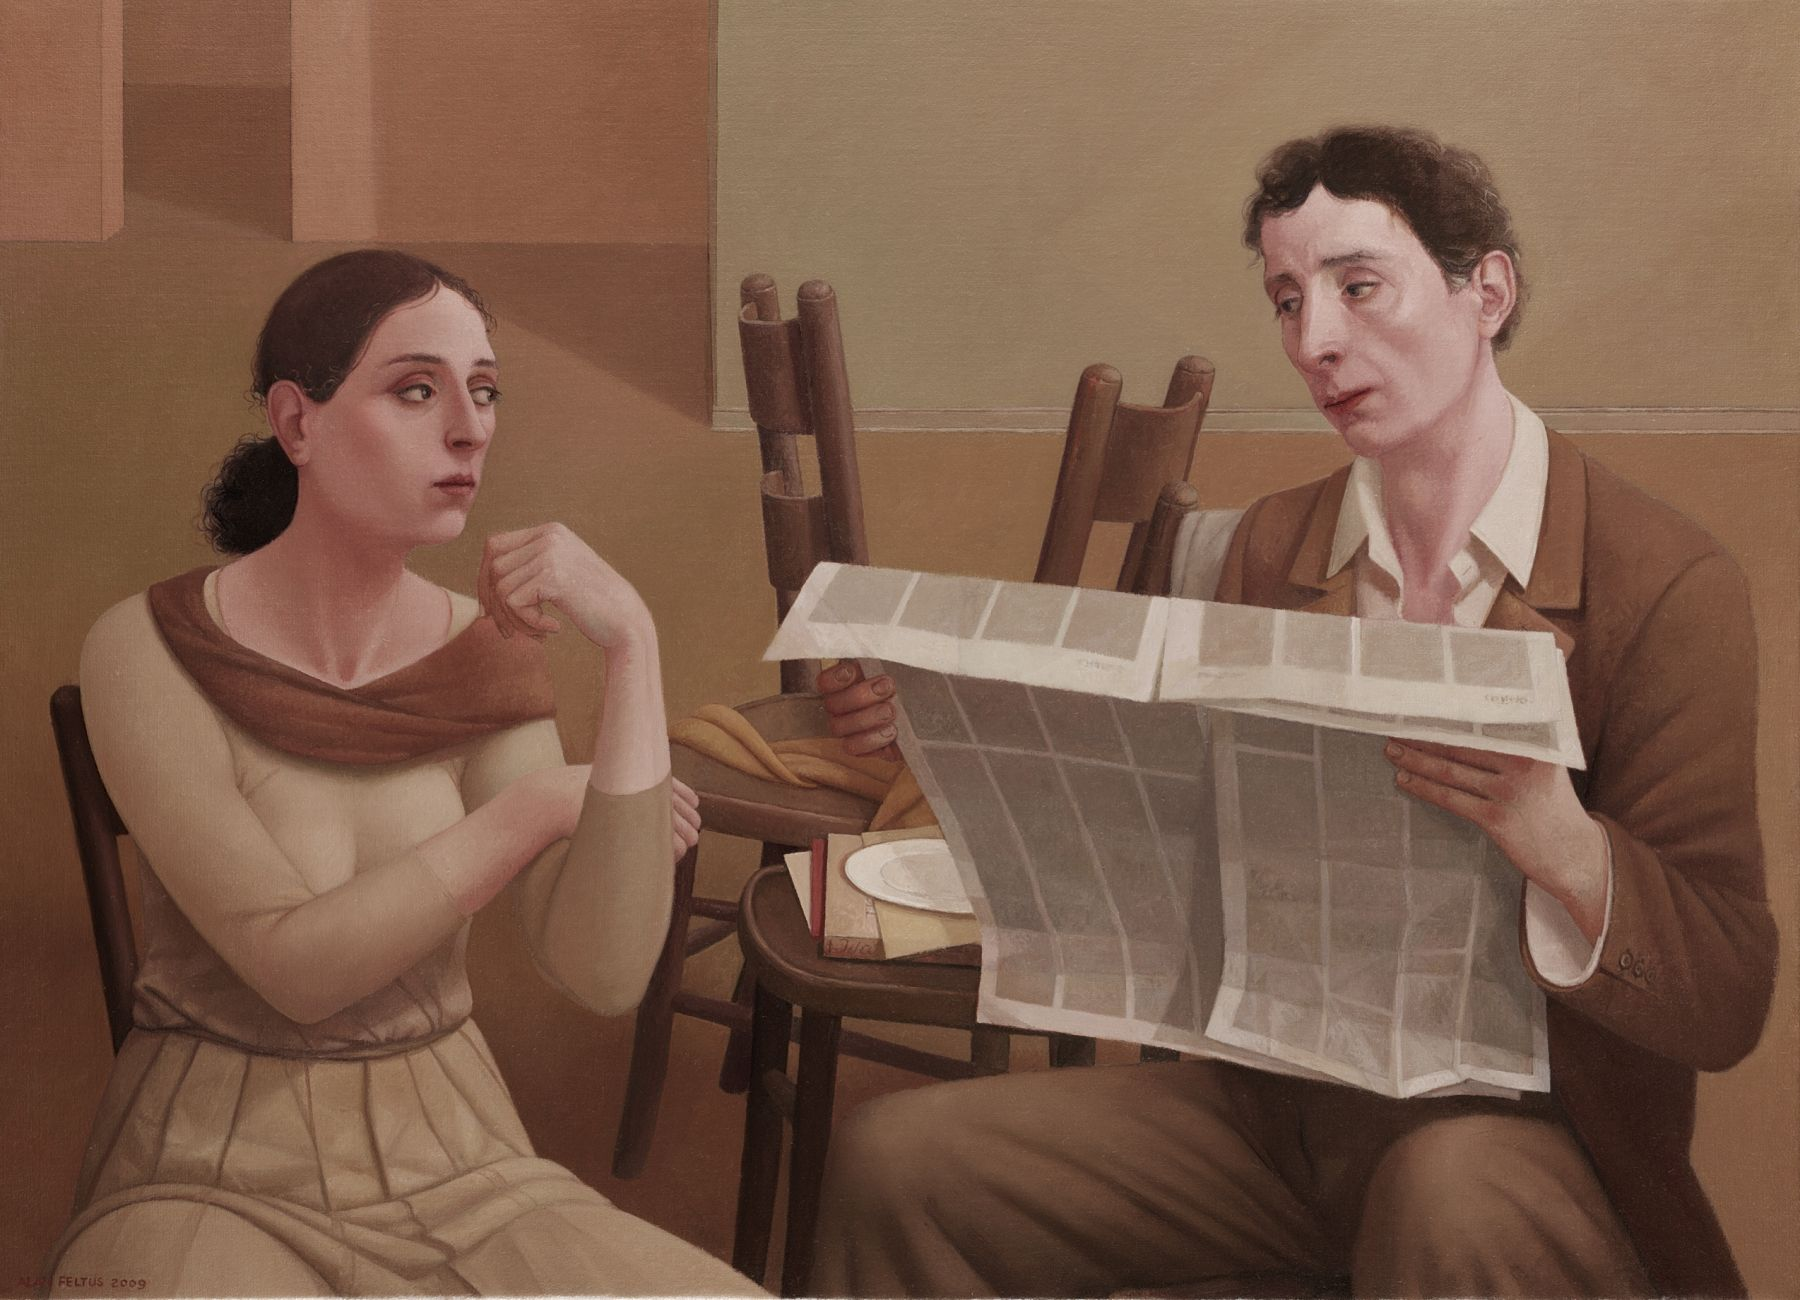 alan feltus, ll Giornale, 2009, oil on canvas, 31 1/2 x 43 1/4 inches